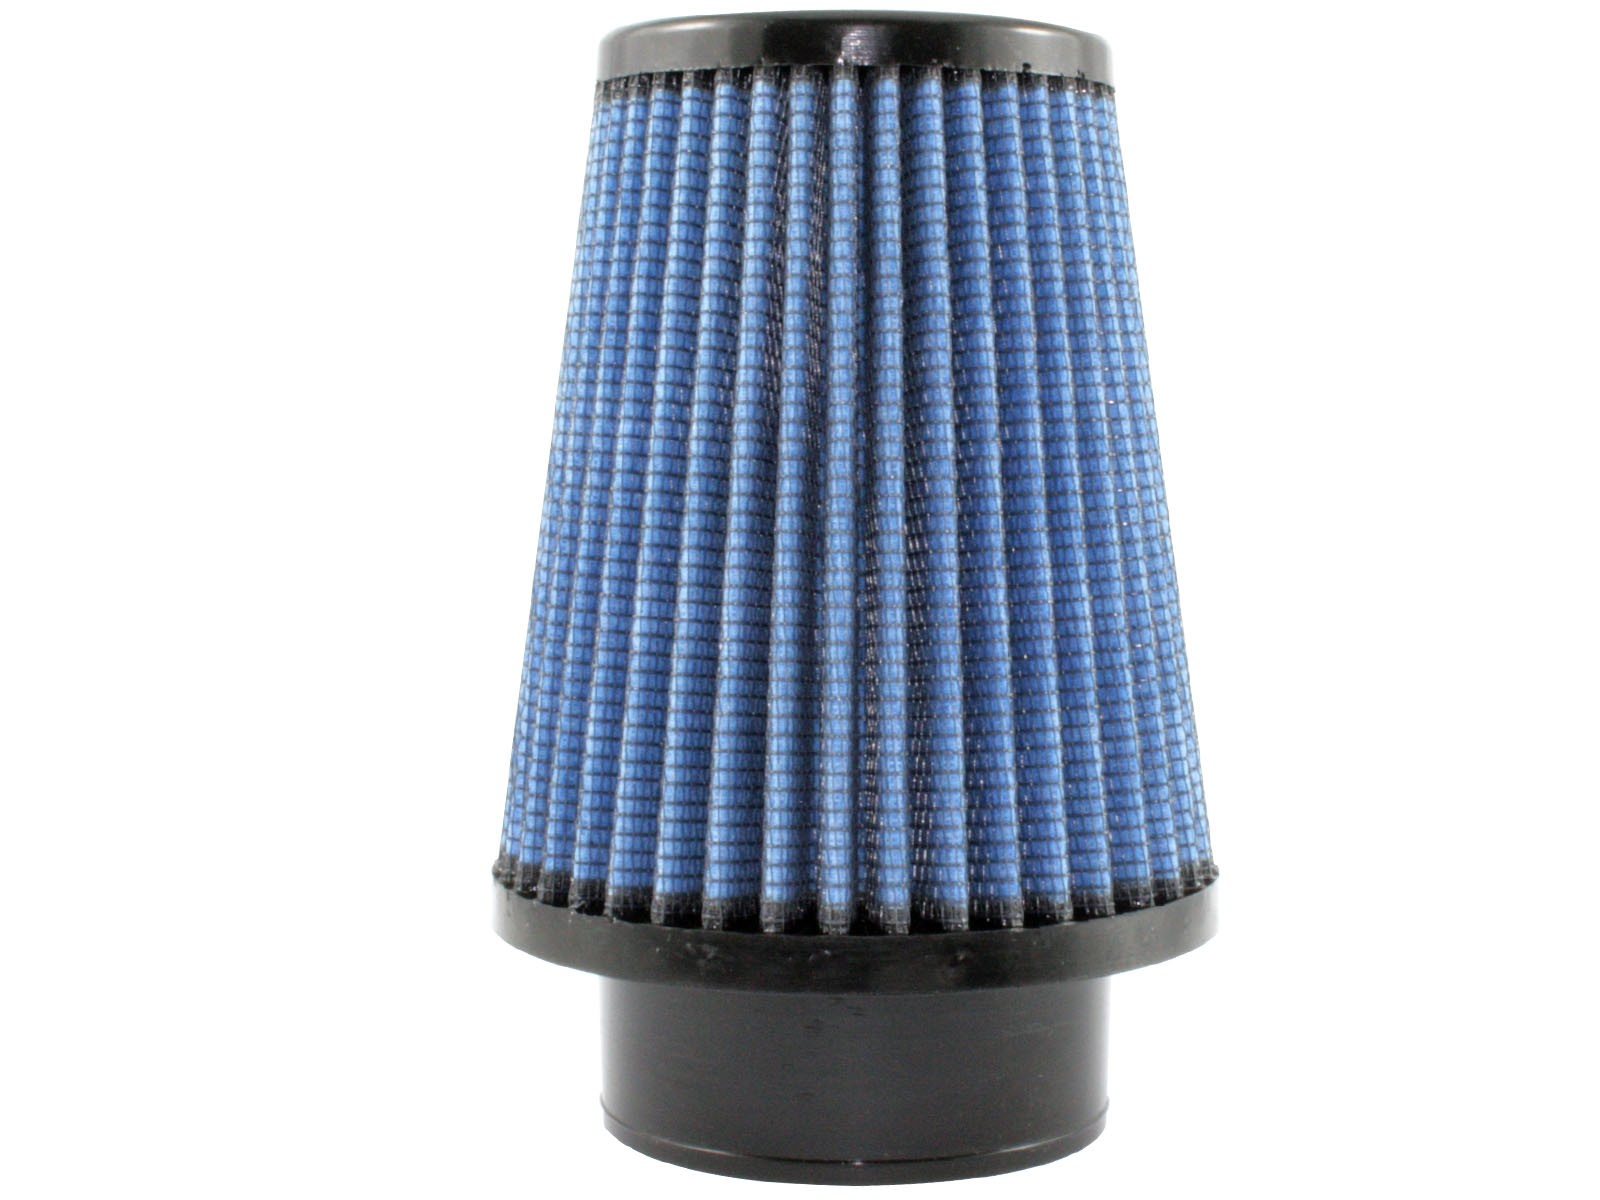 aFe POWER 24-30002 Magnum FLOW Pro 5R Air Filter